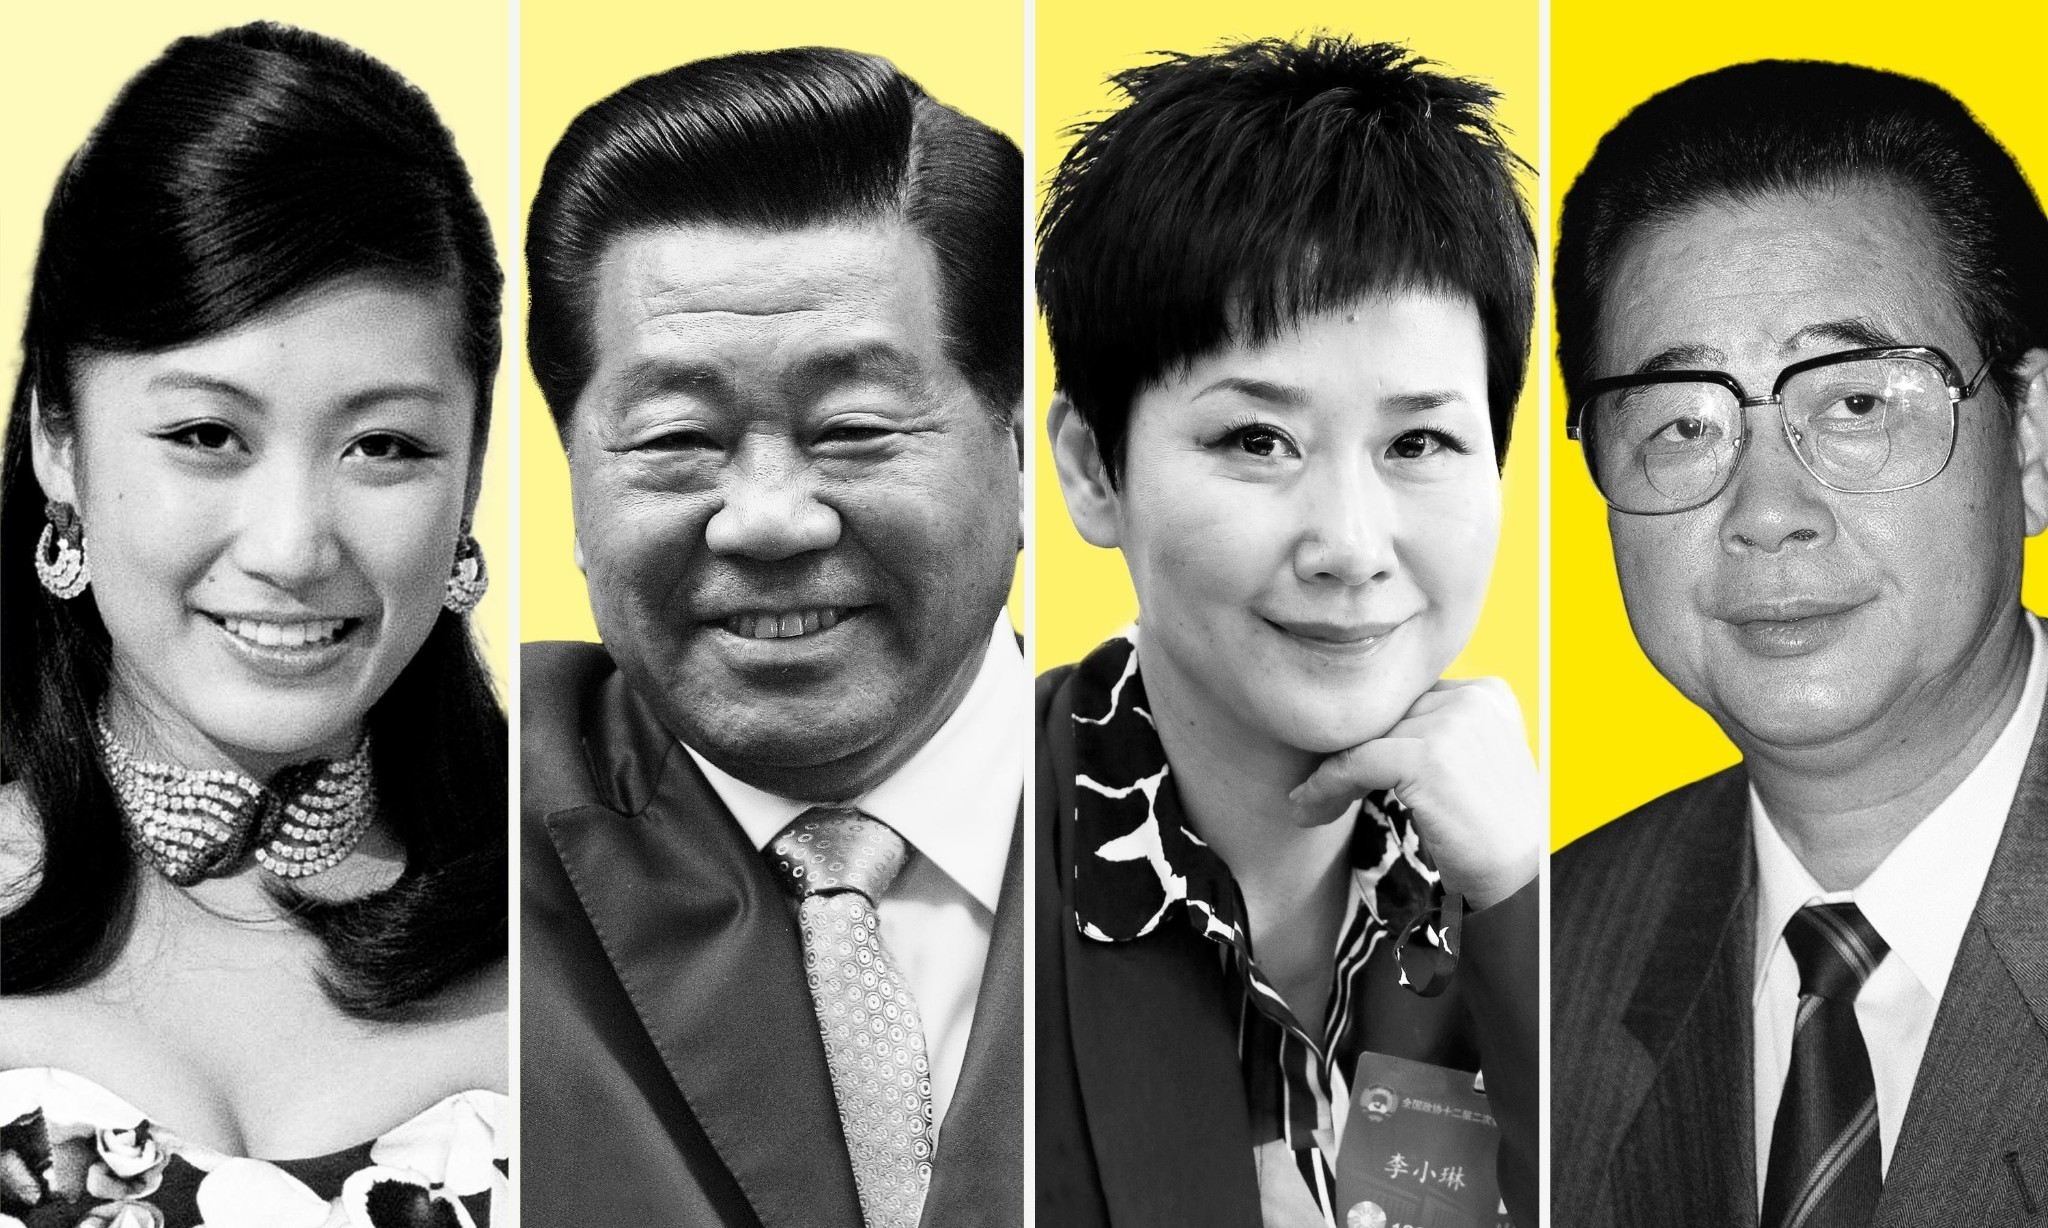 Panama Papers reveal offshore secrets of China's red nobility